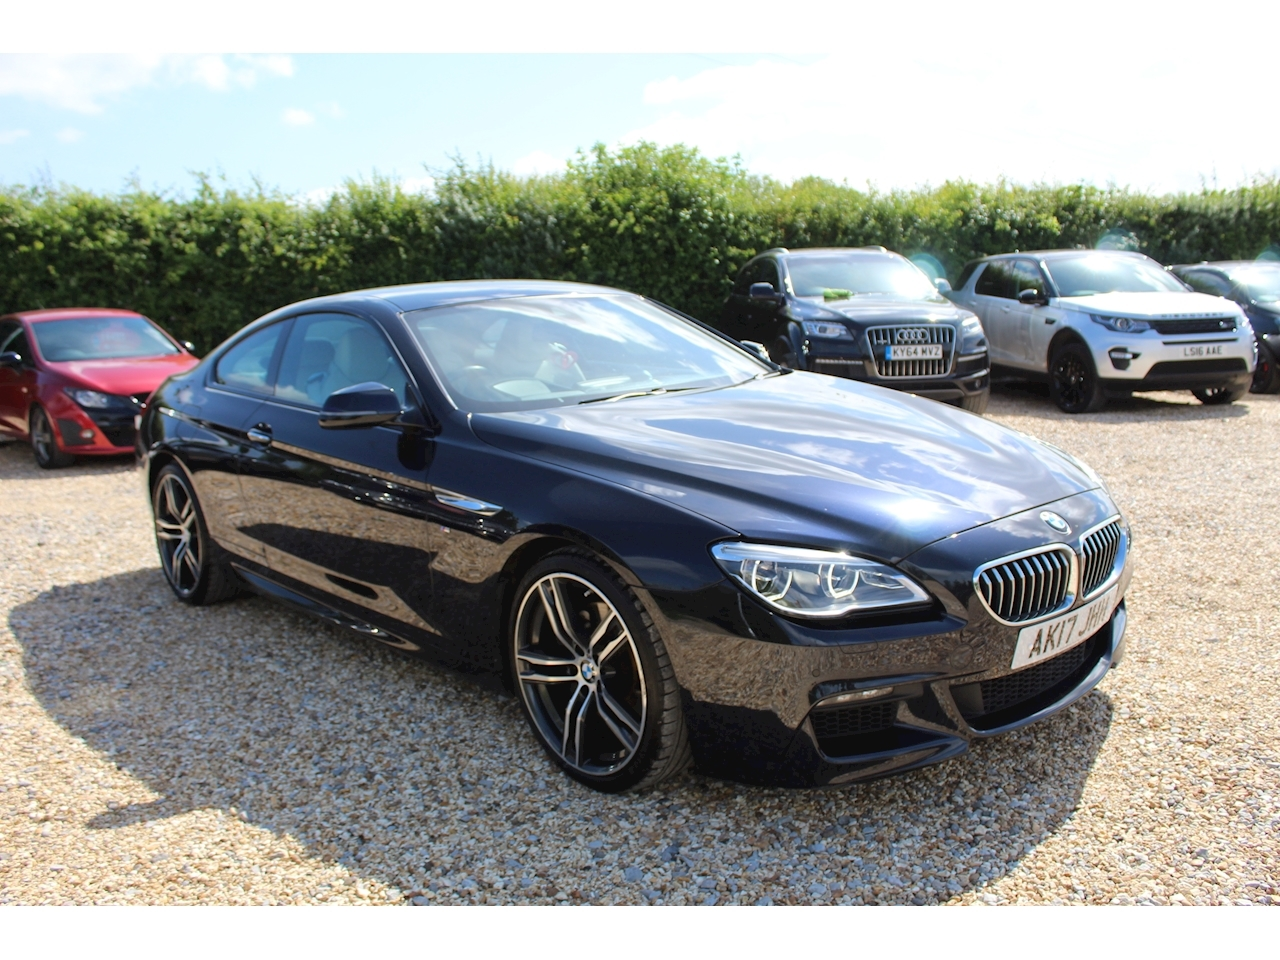 BMW 6 Series 640I M Sport Coupe 3.0 Automatic Petrol